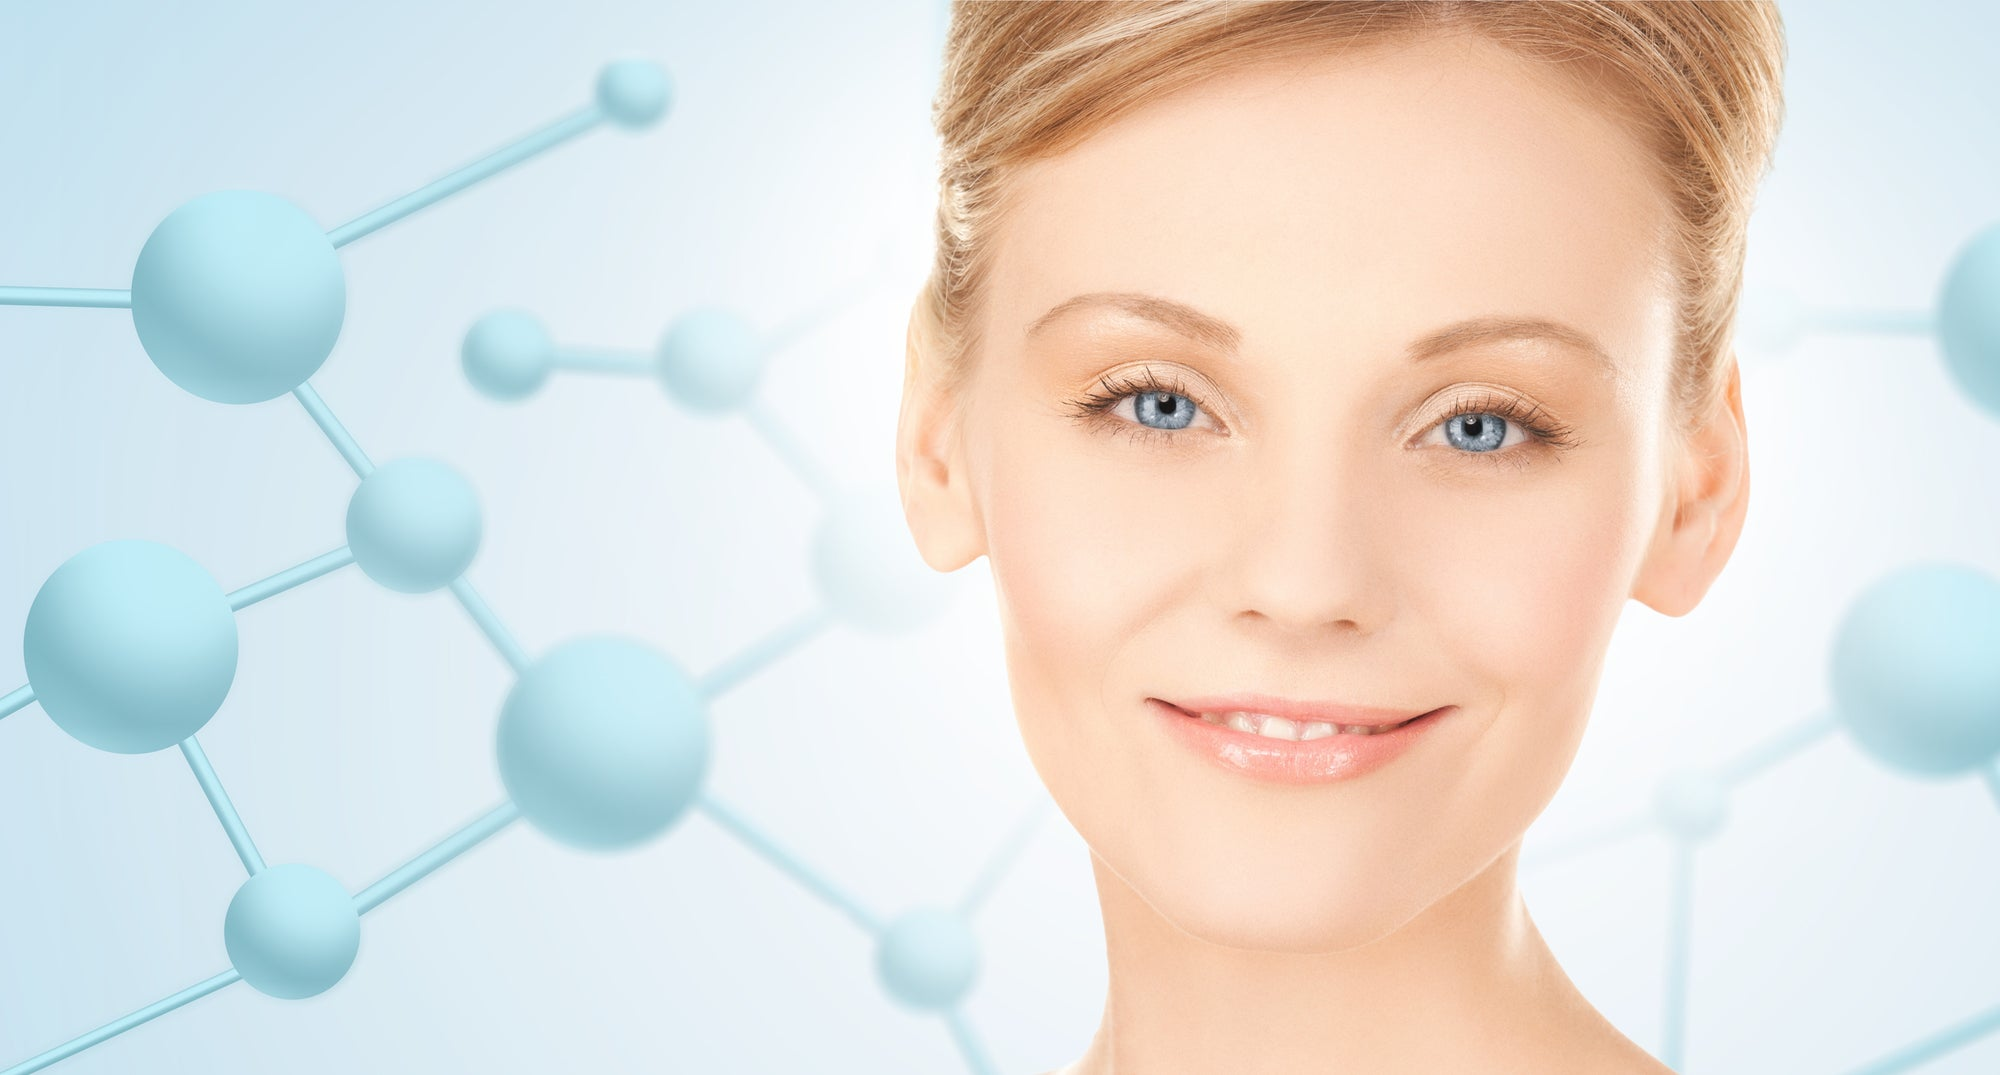 Science Behind Skin: The Importance of Balancing Your Skin's pH